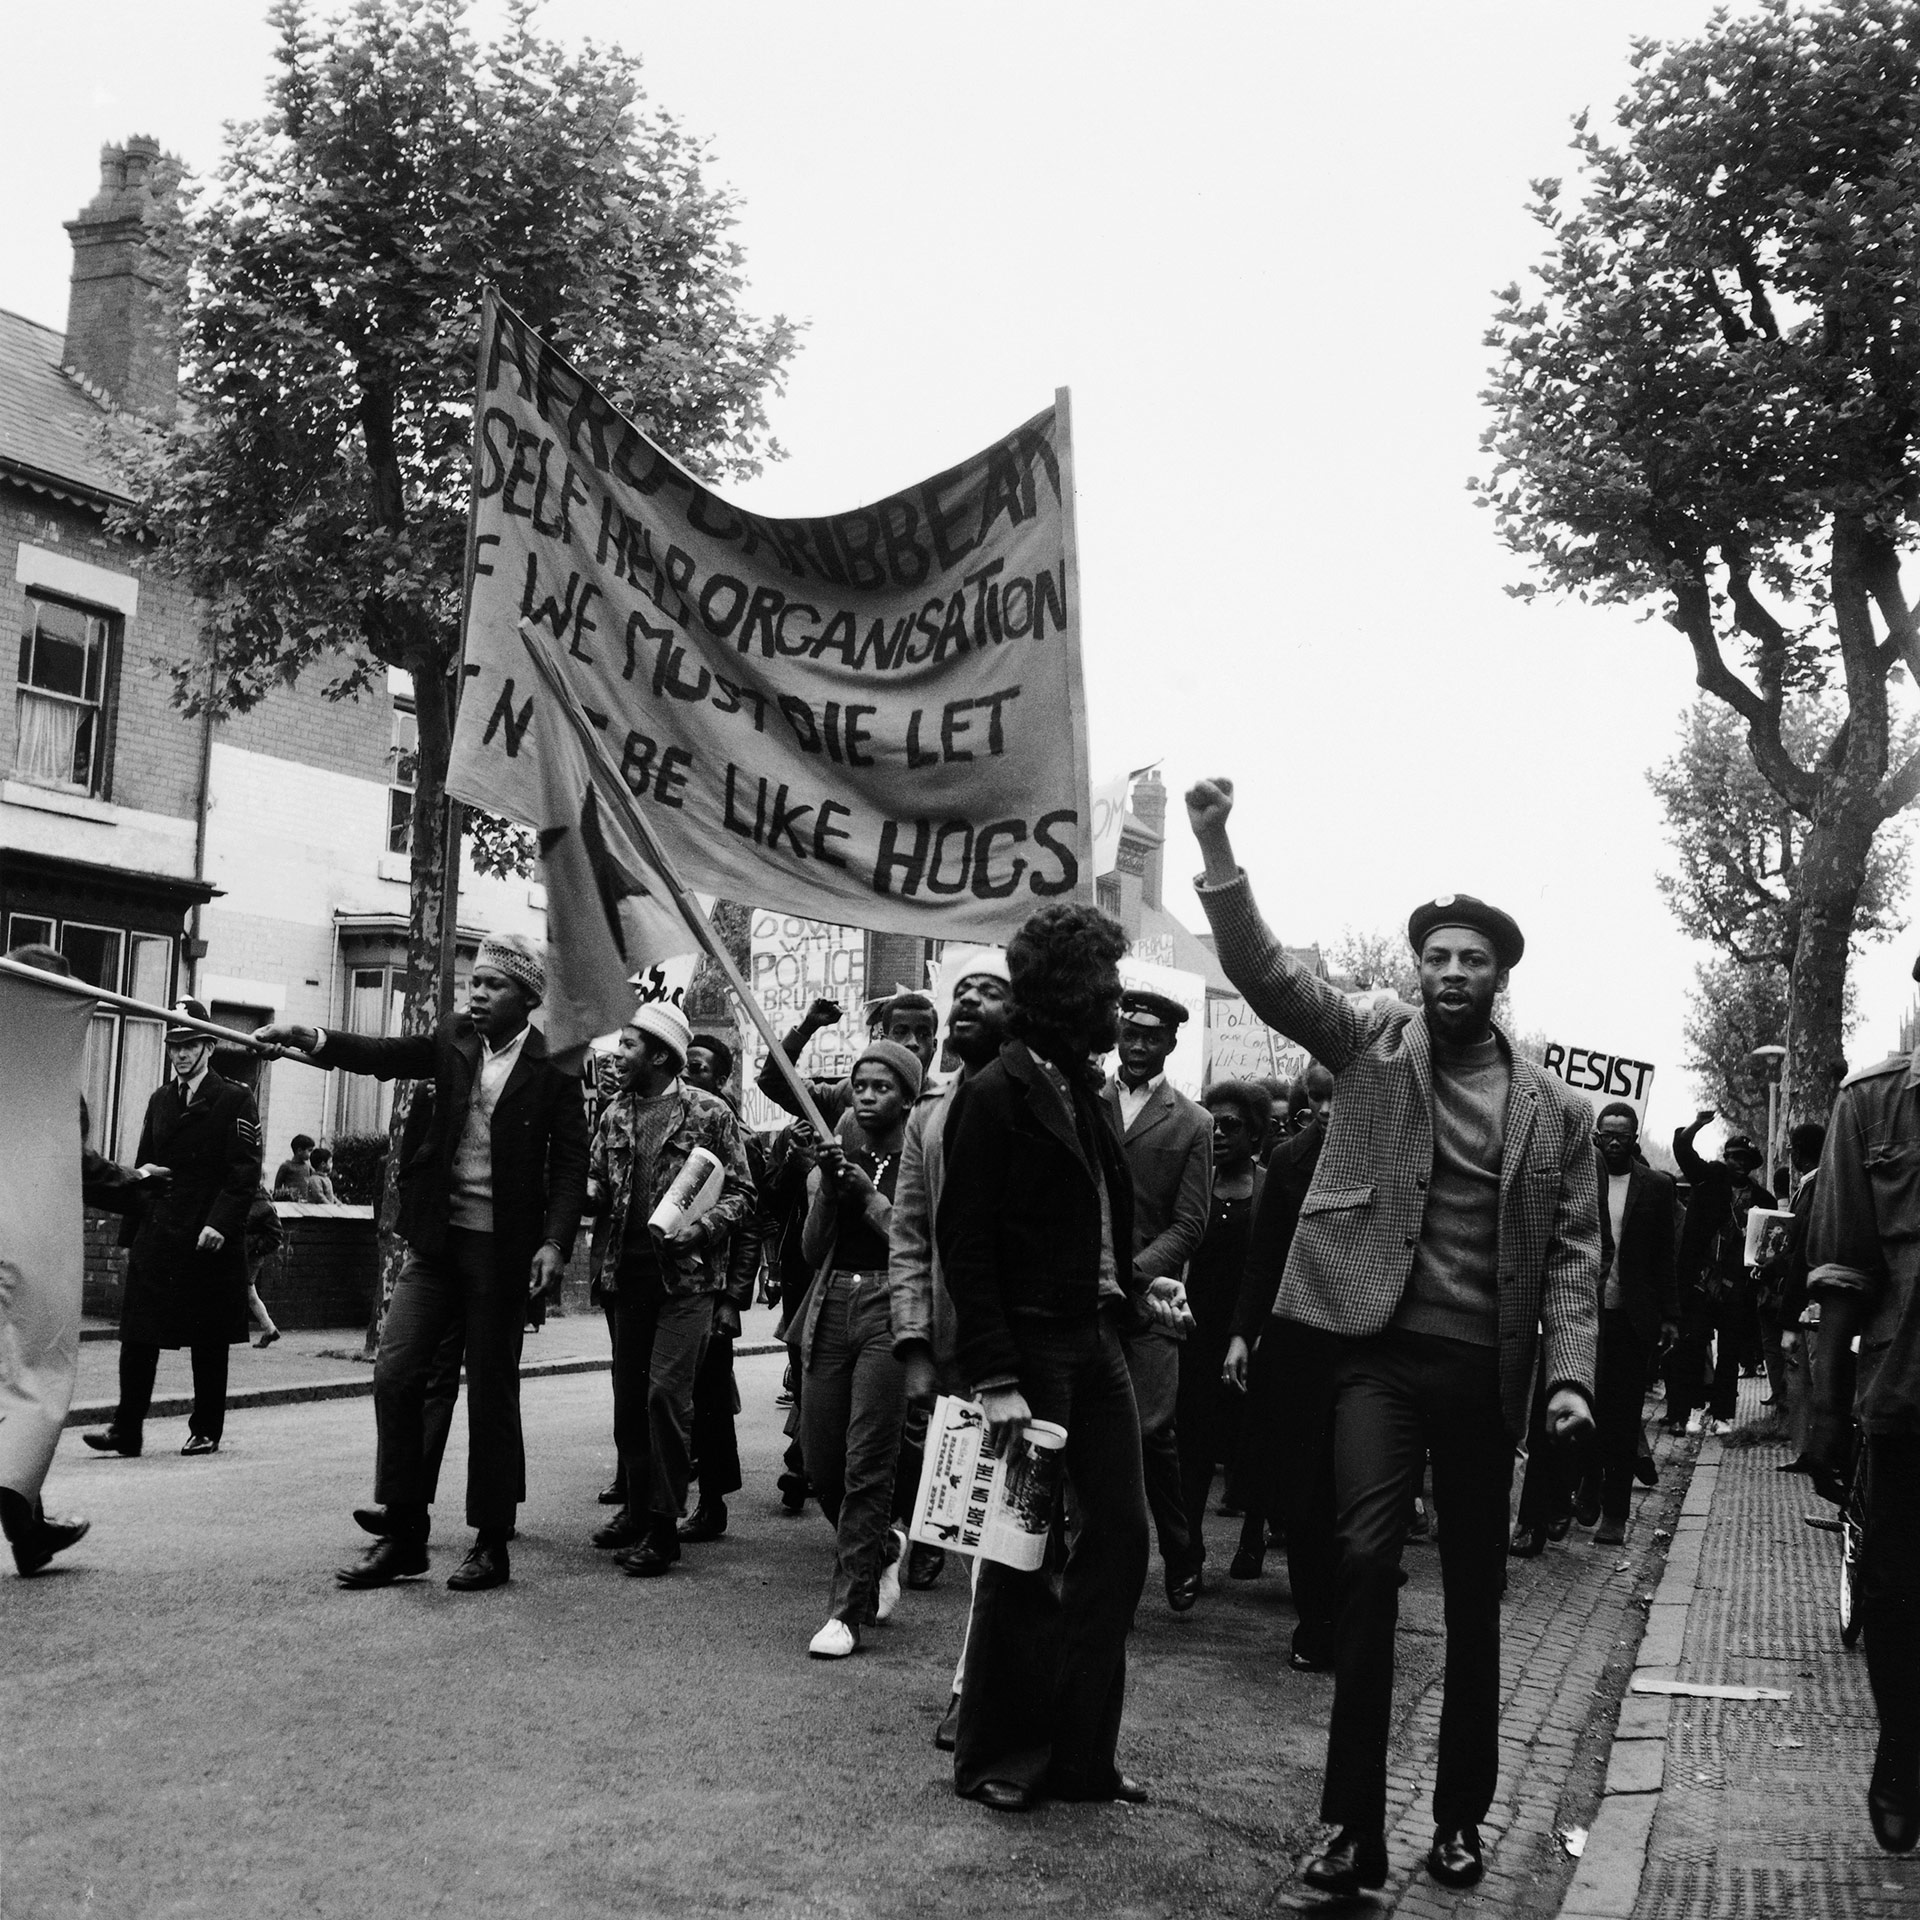 Protesting against racism and police brutality, 1972